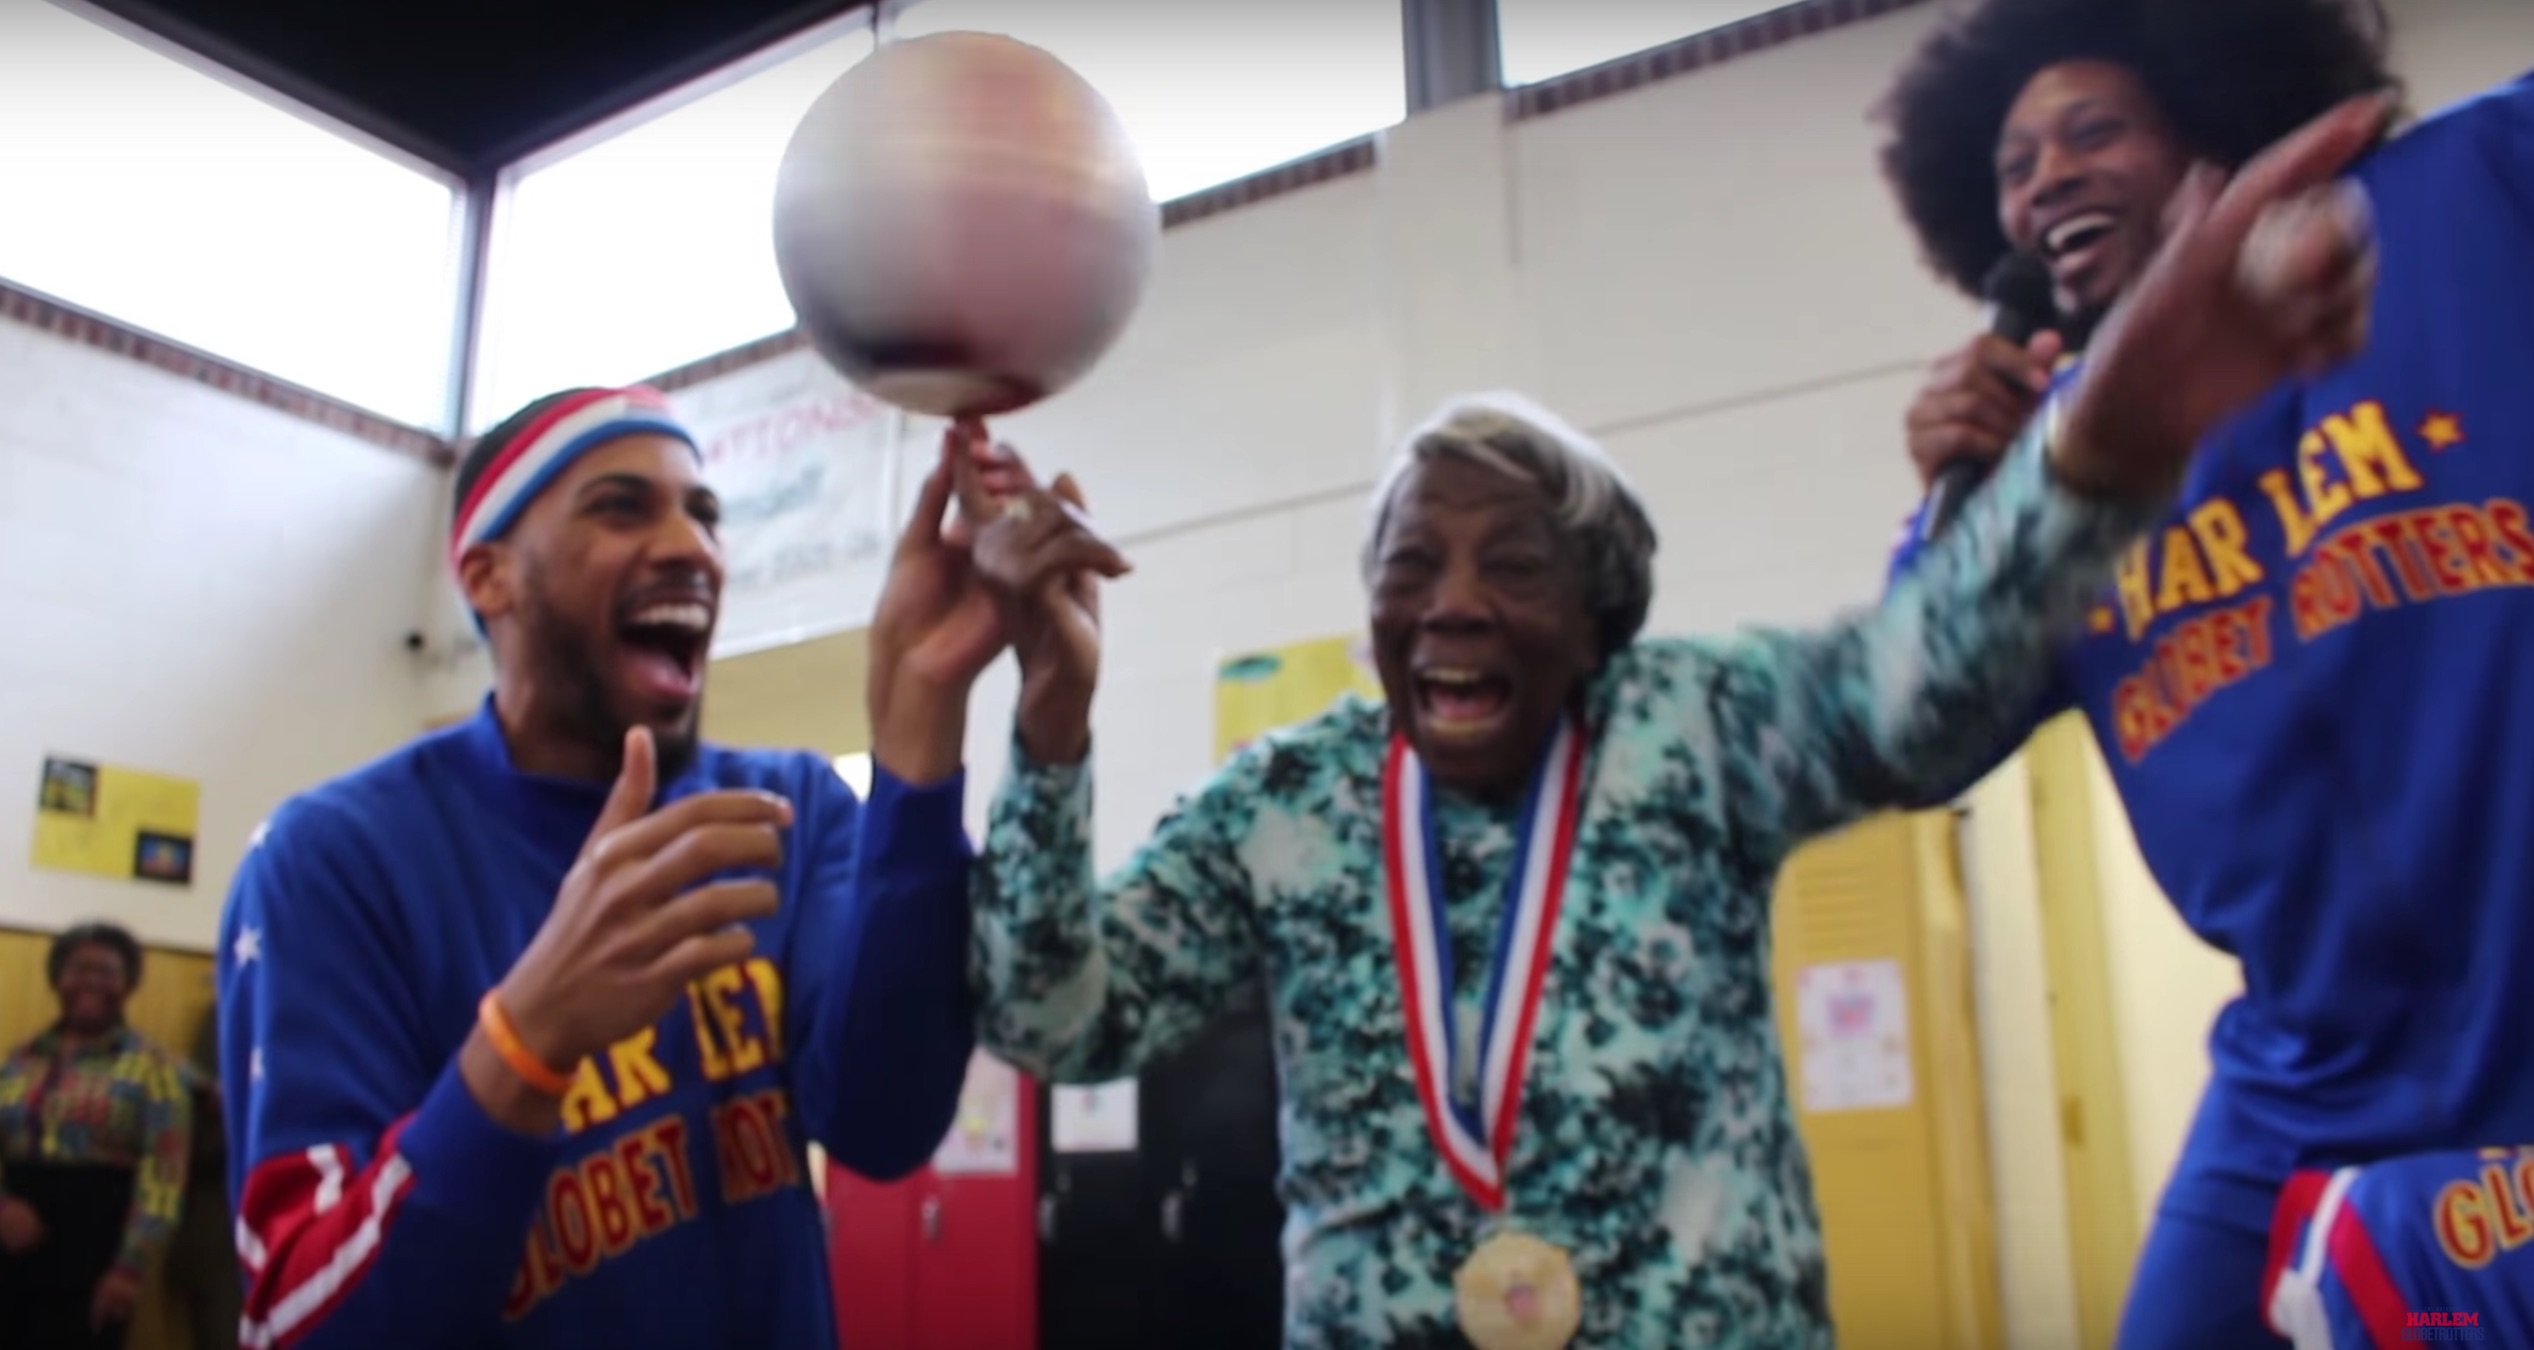 107 year-old woman shows off some serious basketball moves